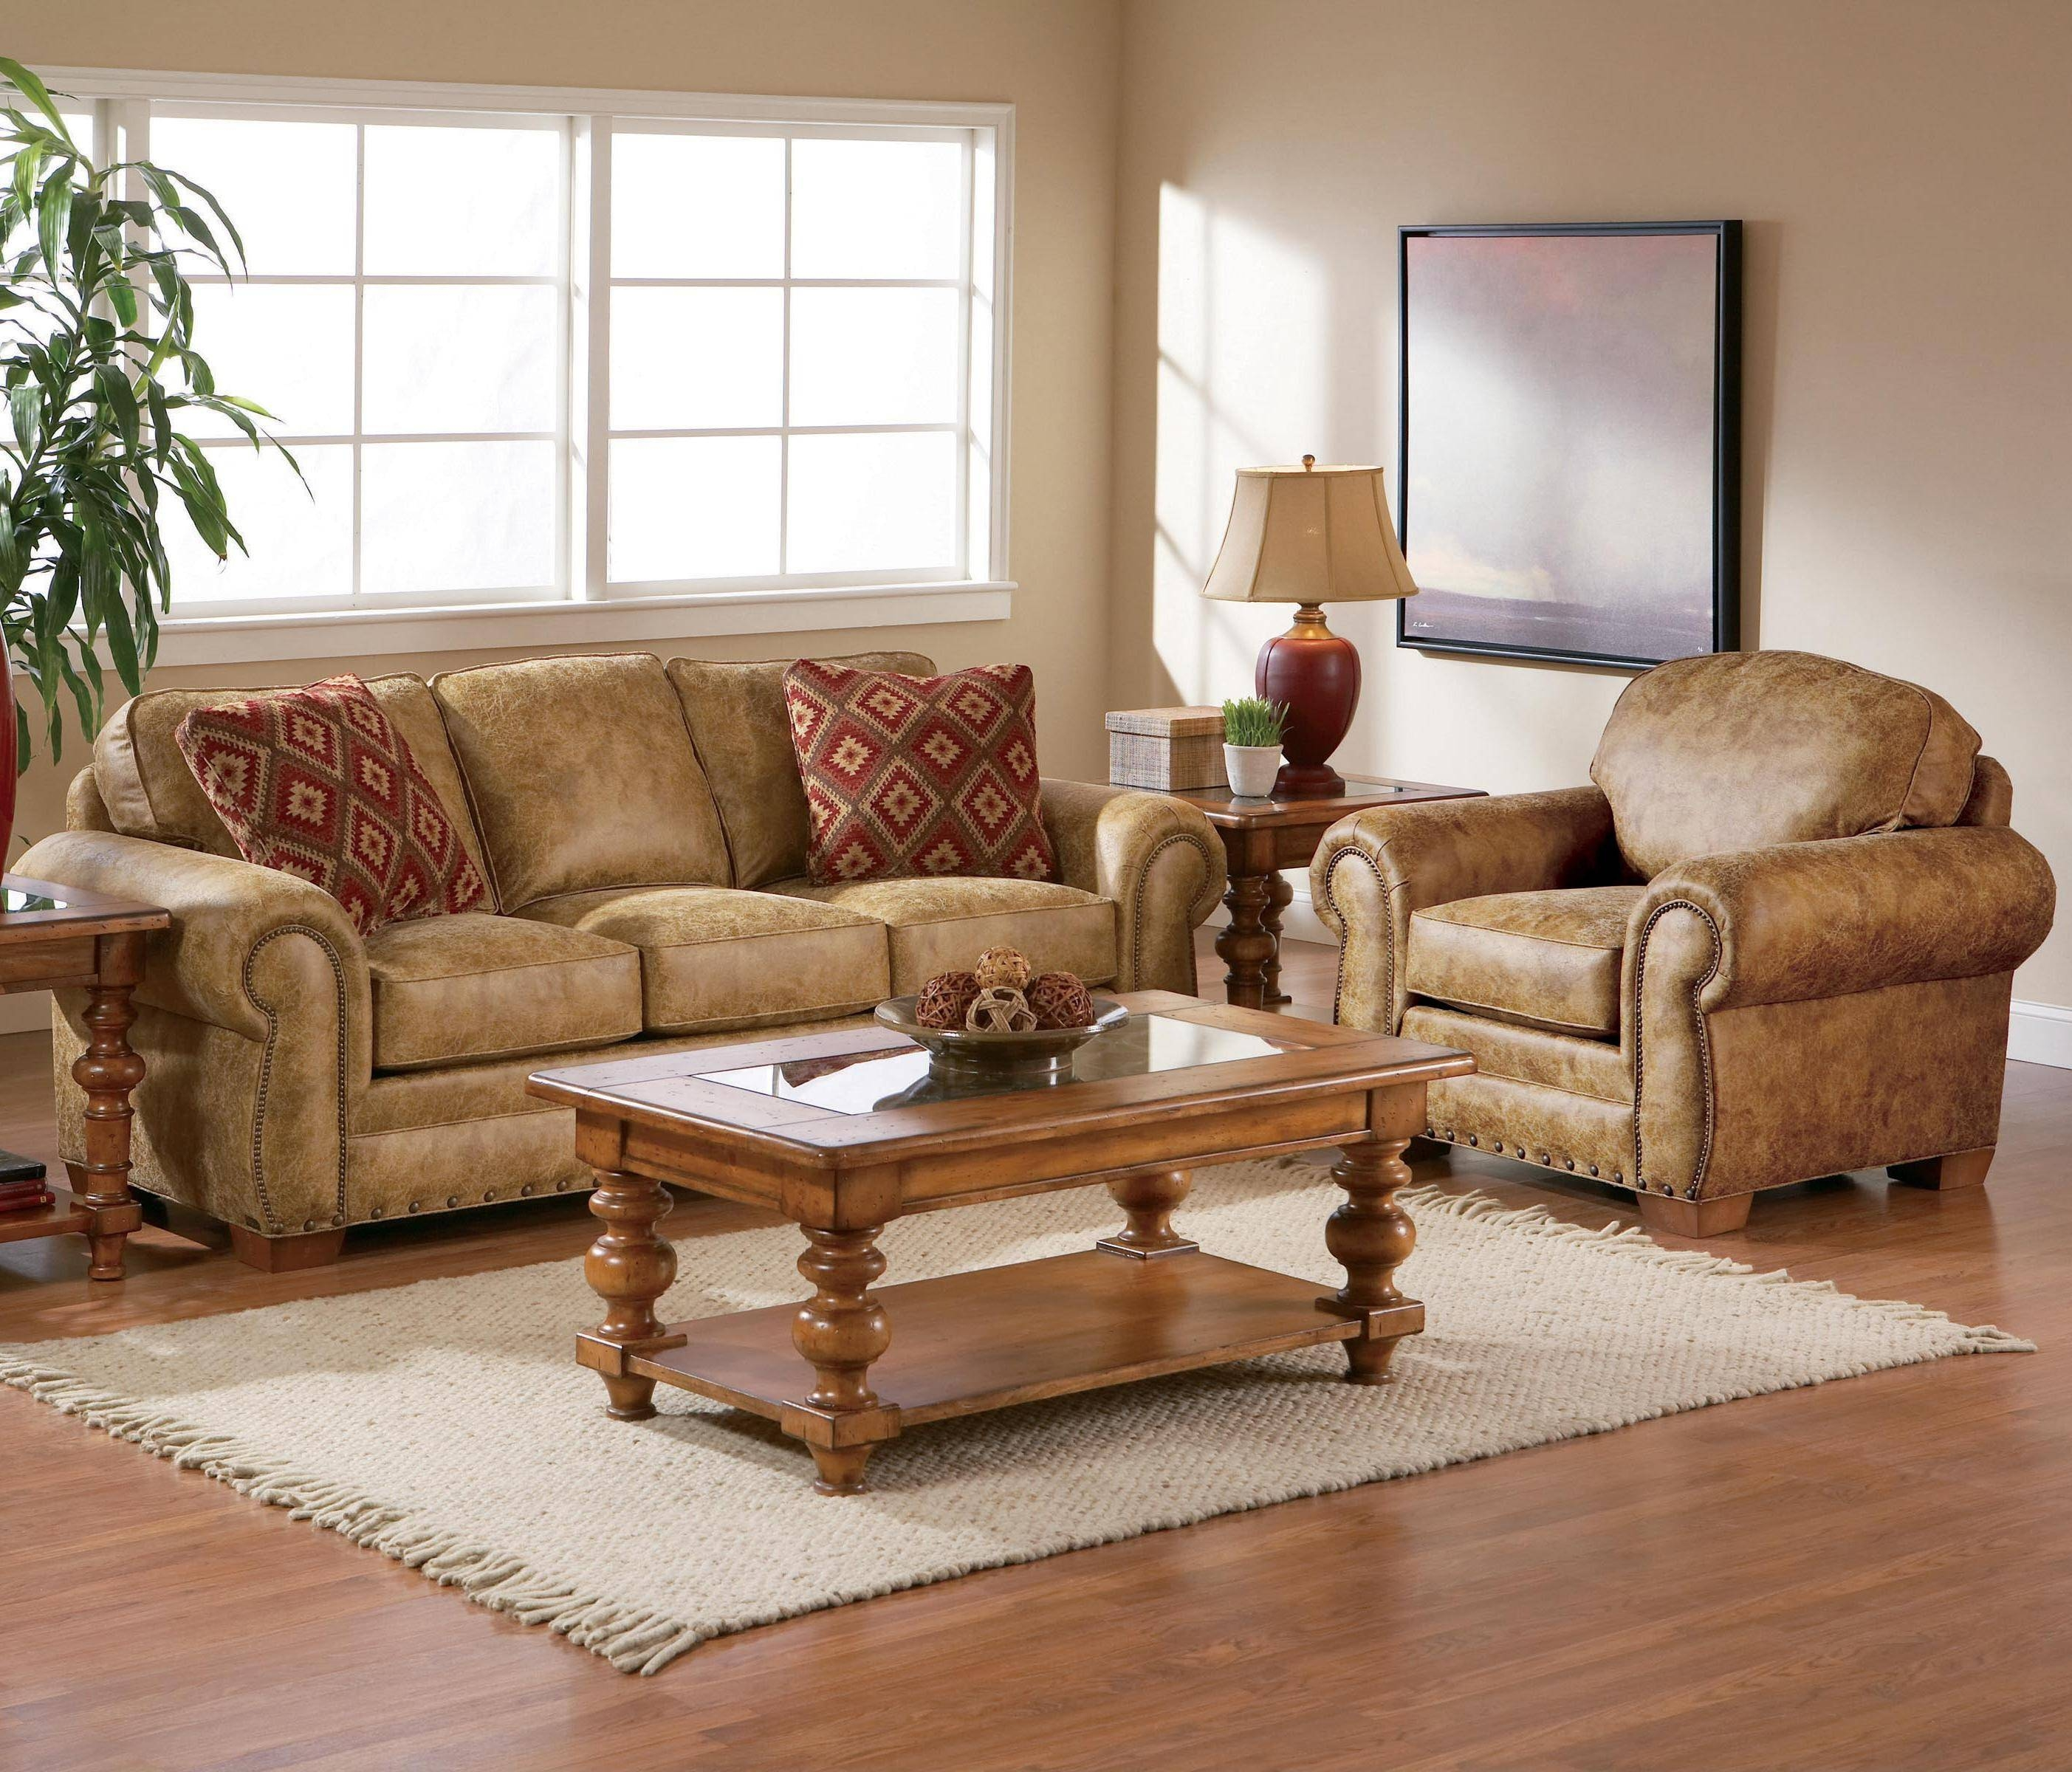 Furniture: Stunning Broyhill Sofas For Enchanting Living Room Inside Casual Sofas And Chairs (View 12 of 15)